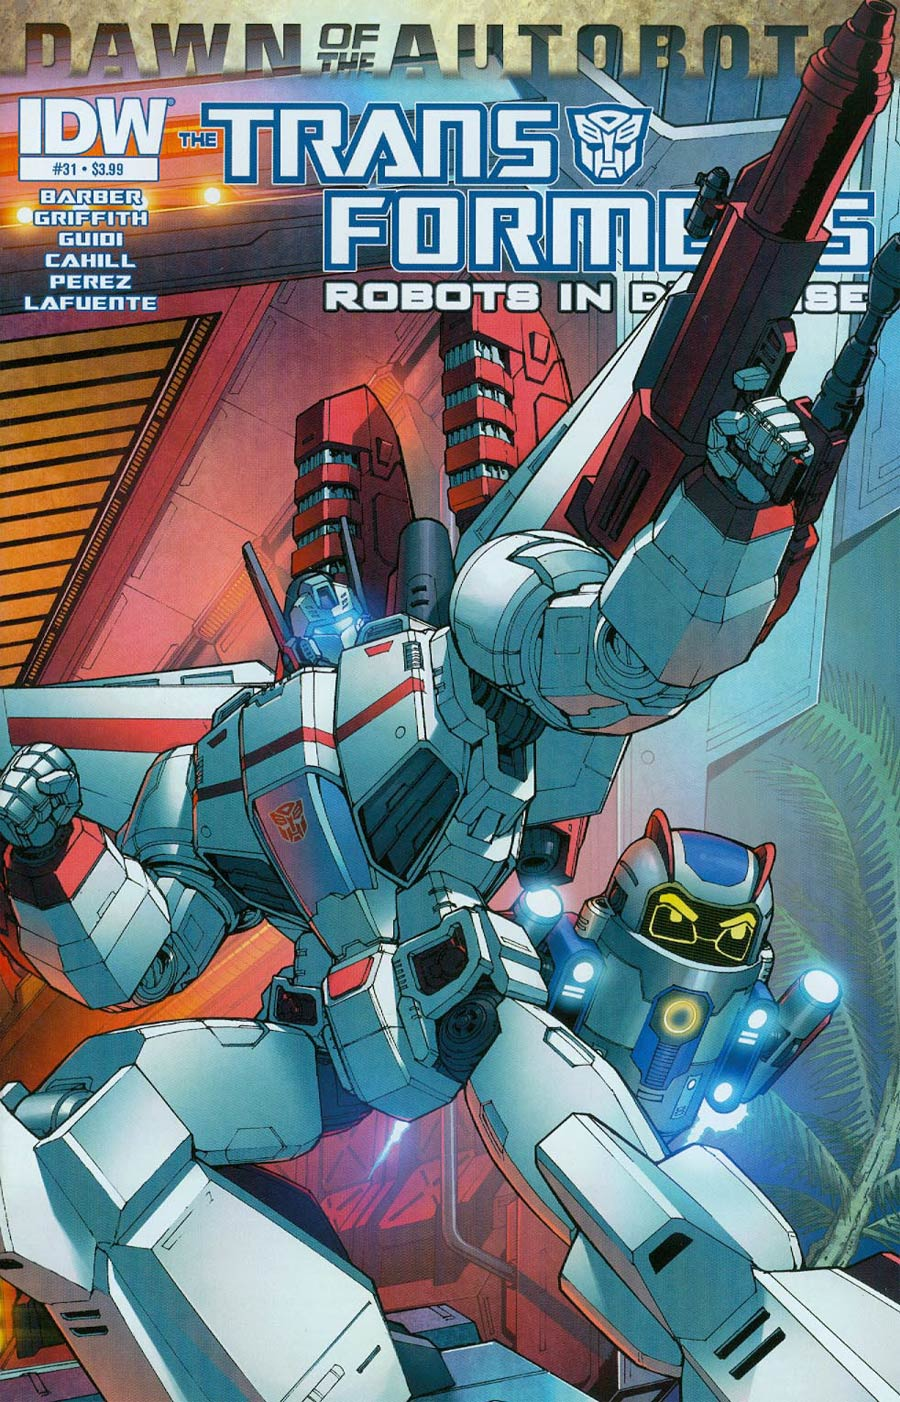 Transformers Robots In Disguise #31 Cover A Regular Andrew Griffith Cover (Dawn Of The Autobots Tie-In)